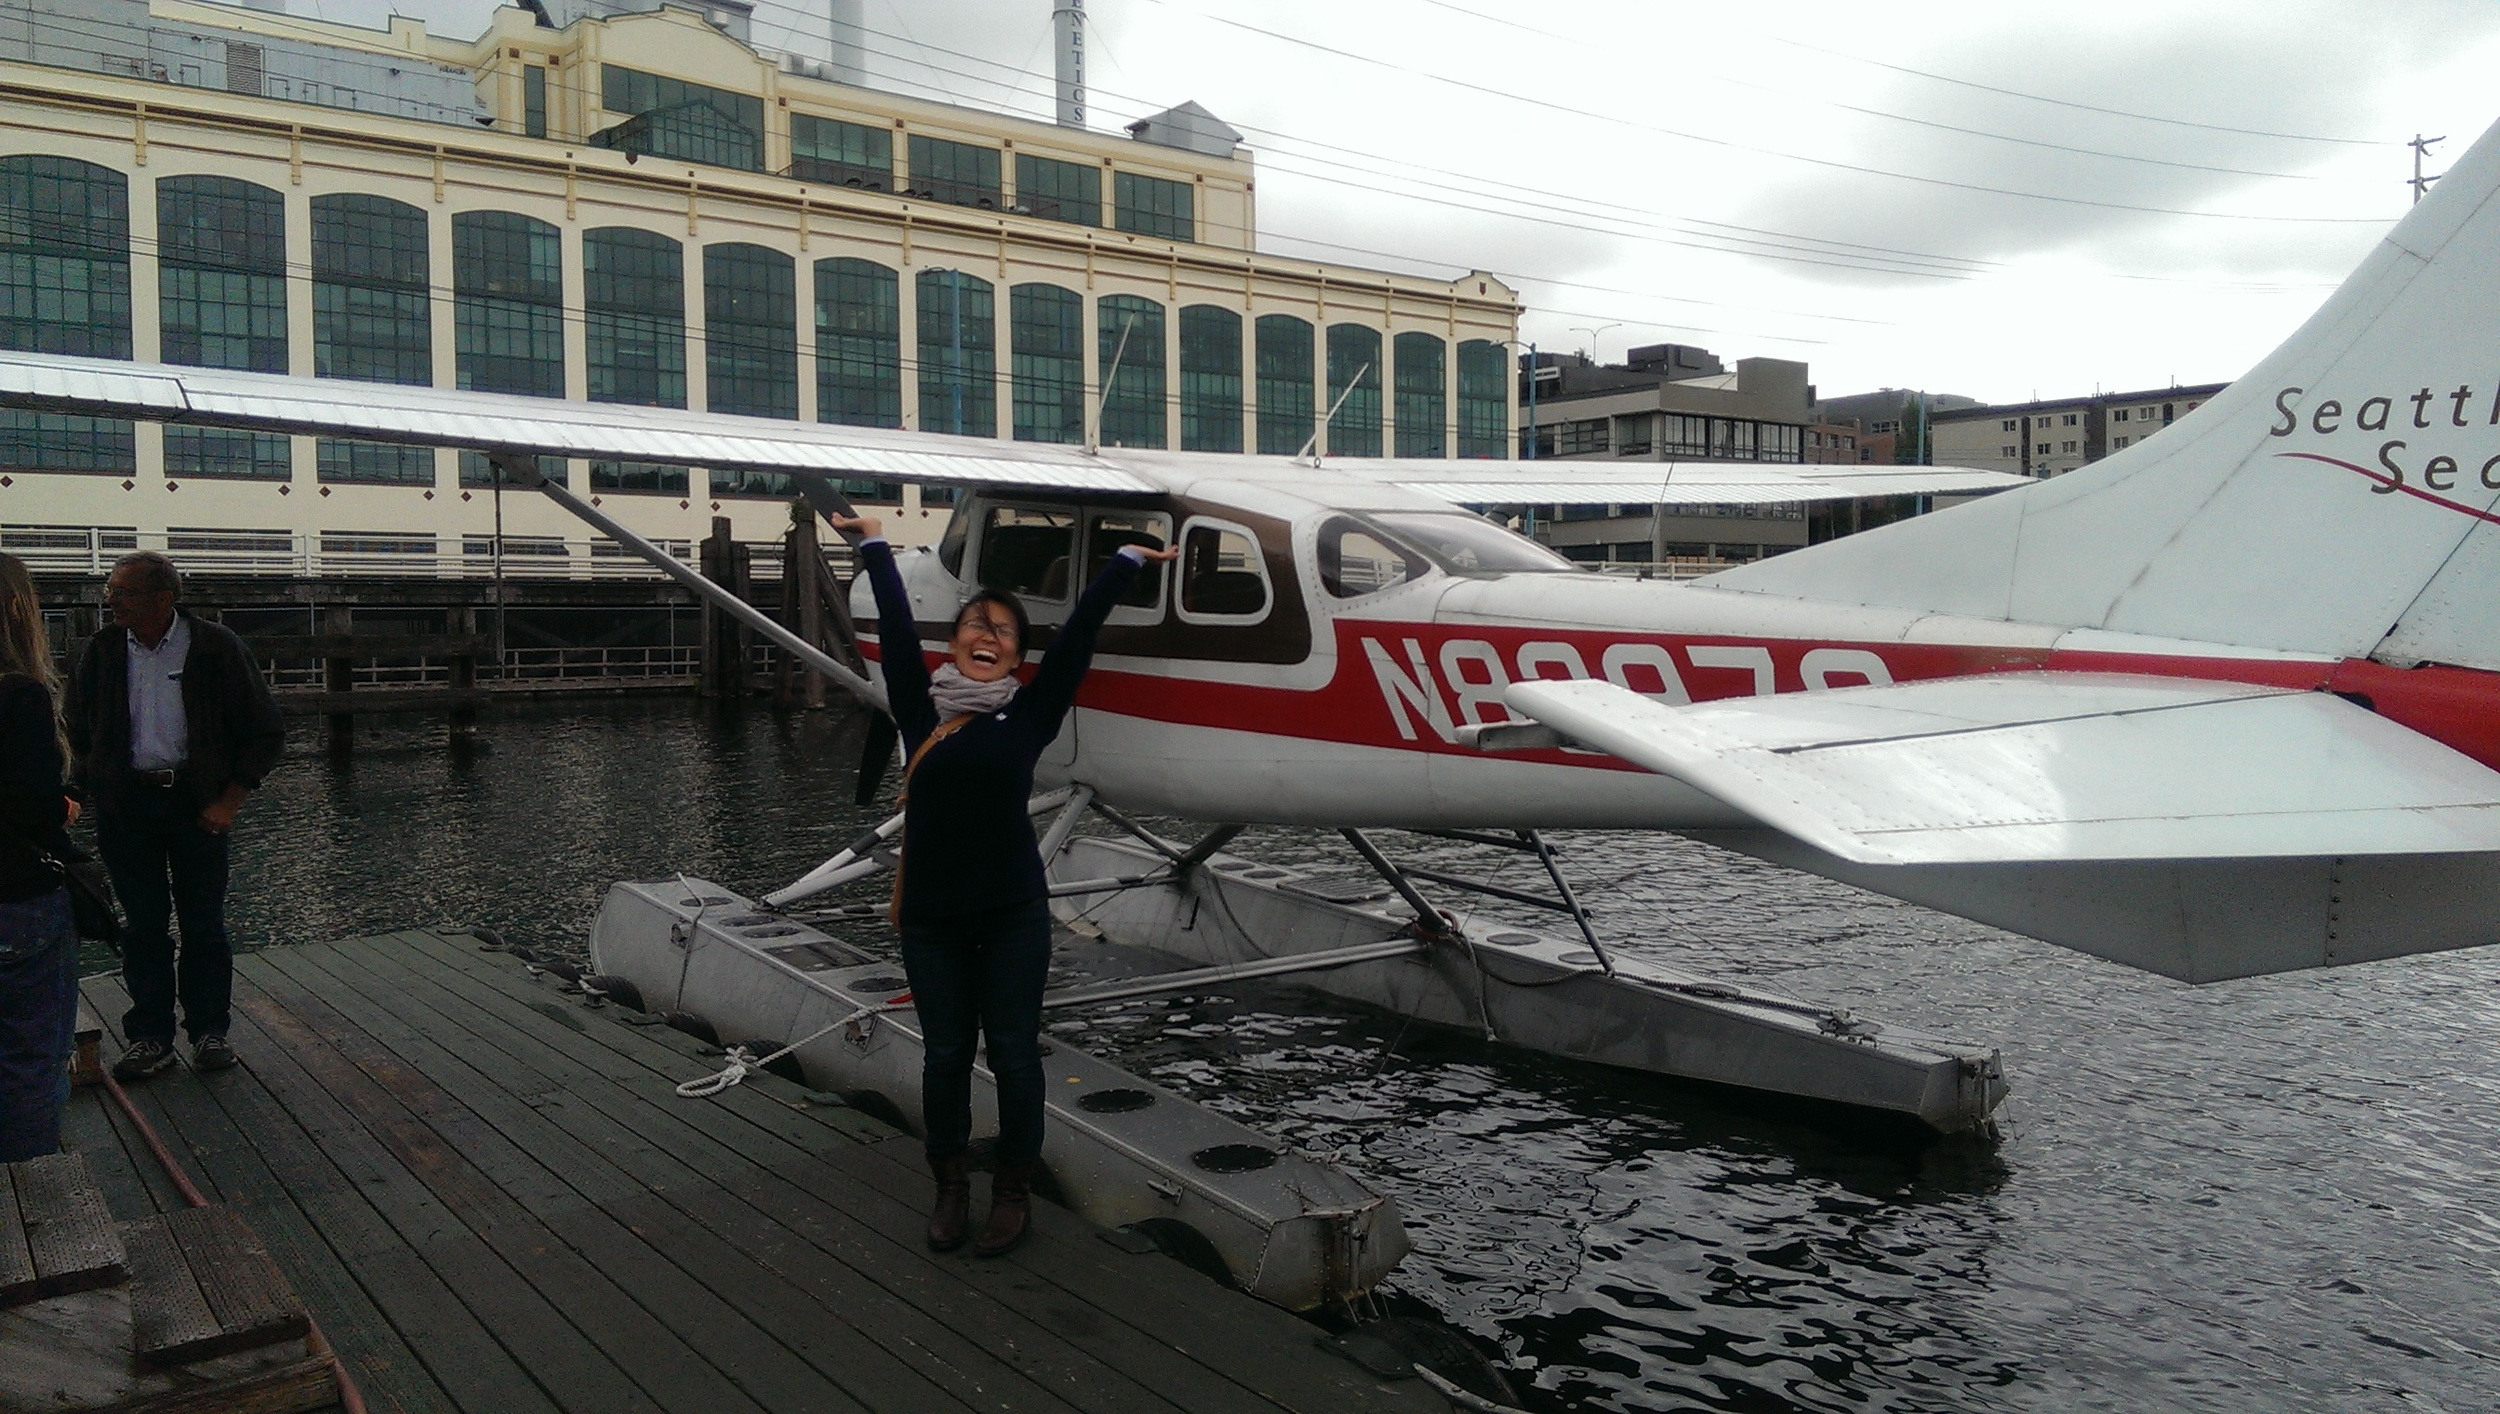 10 - Yay! at Seattle Seaplanes